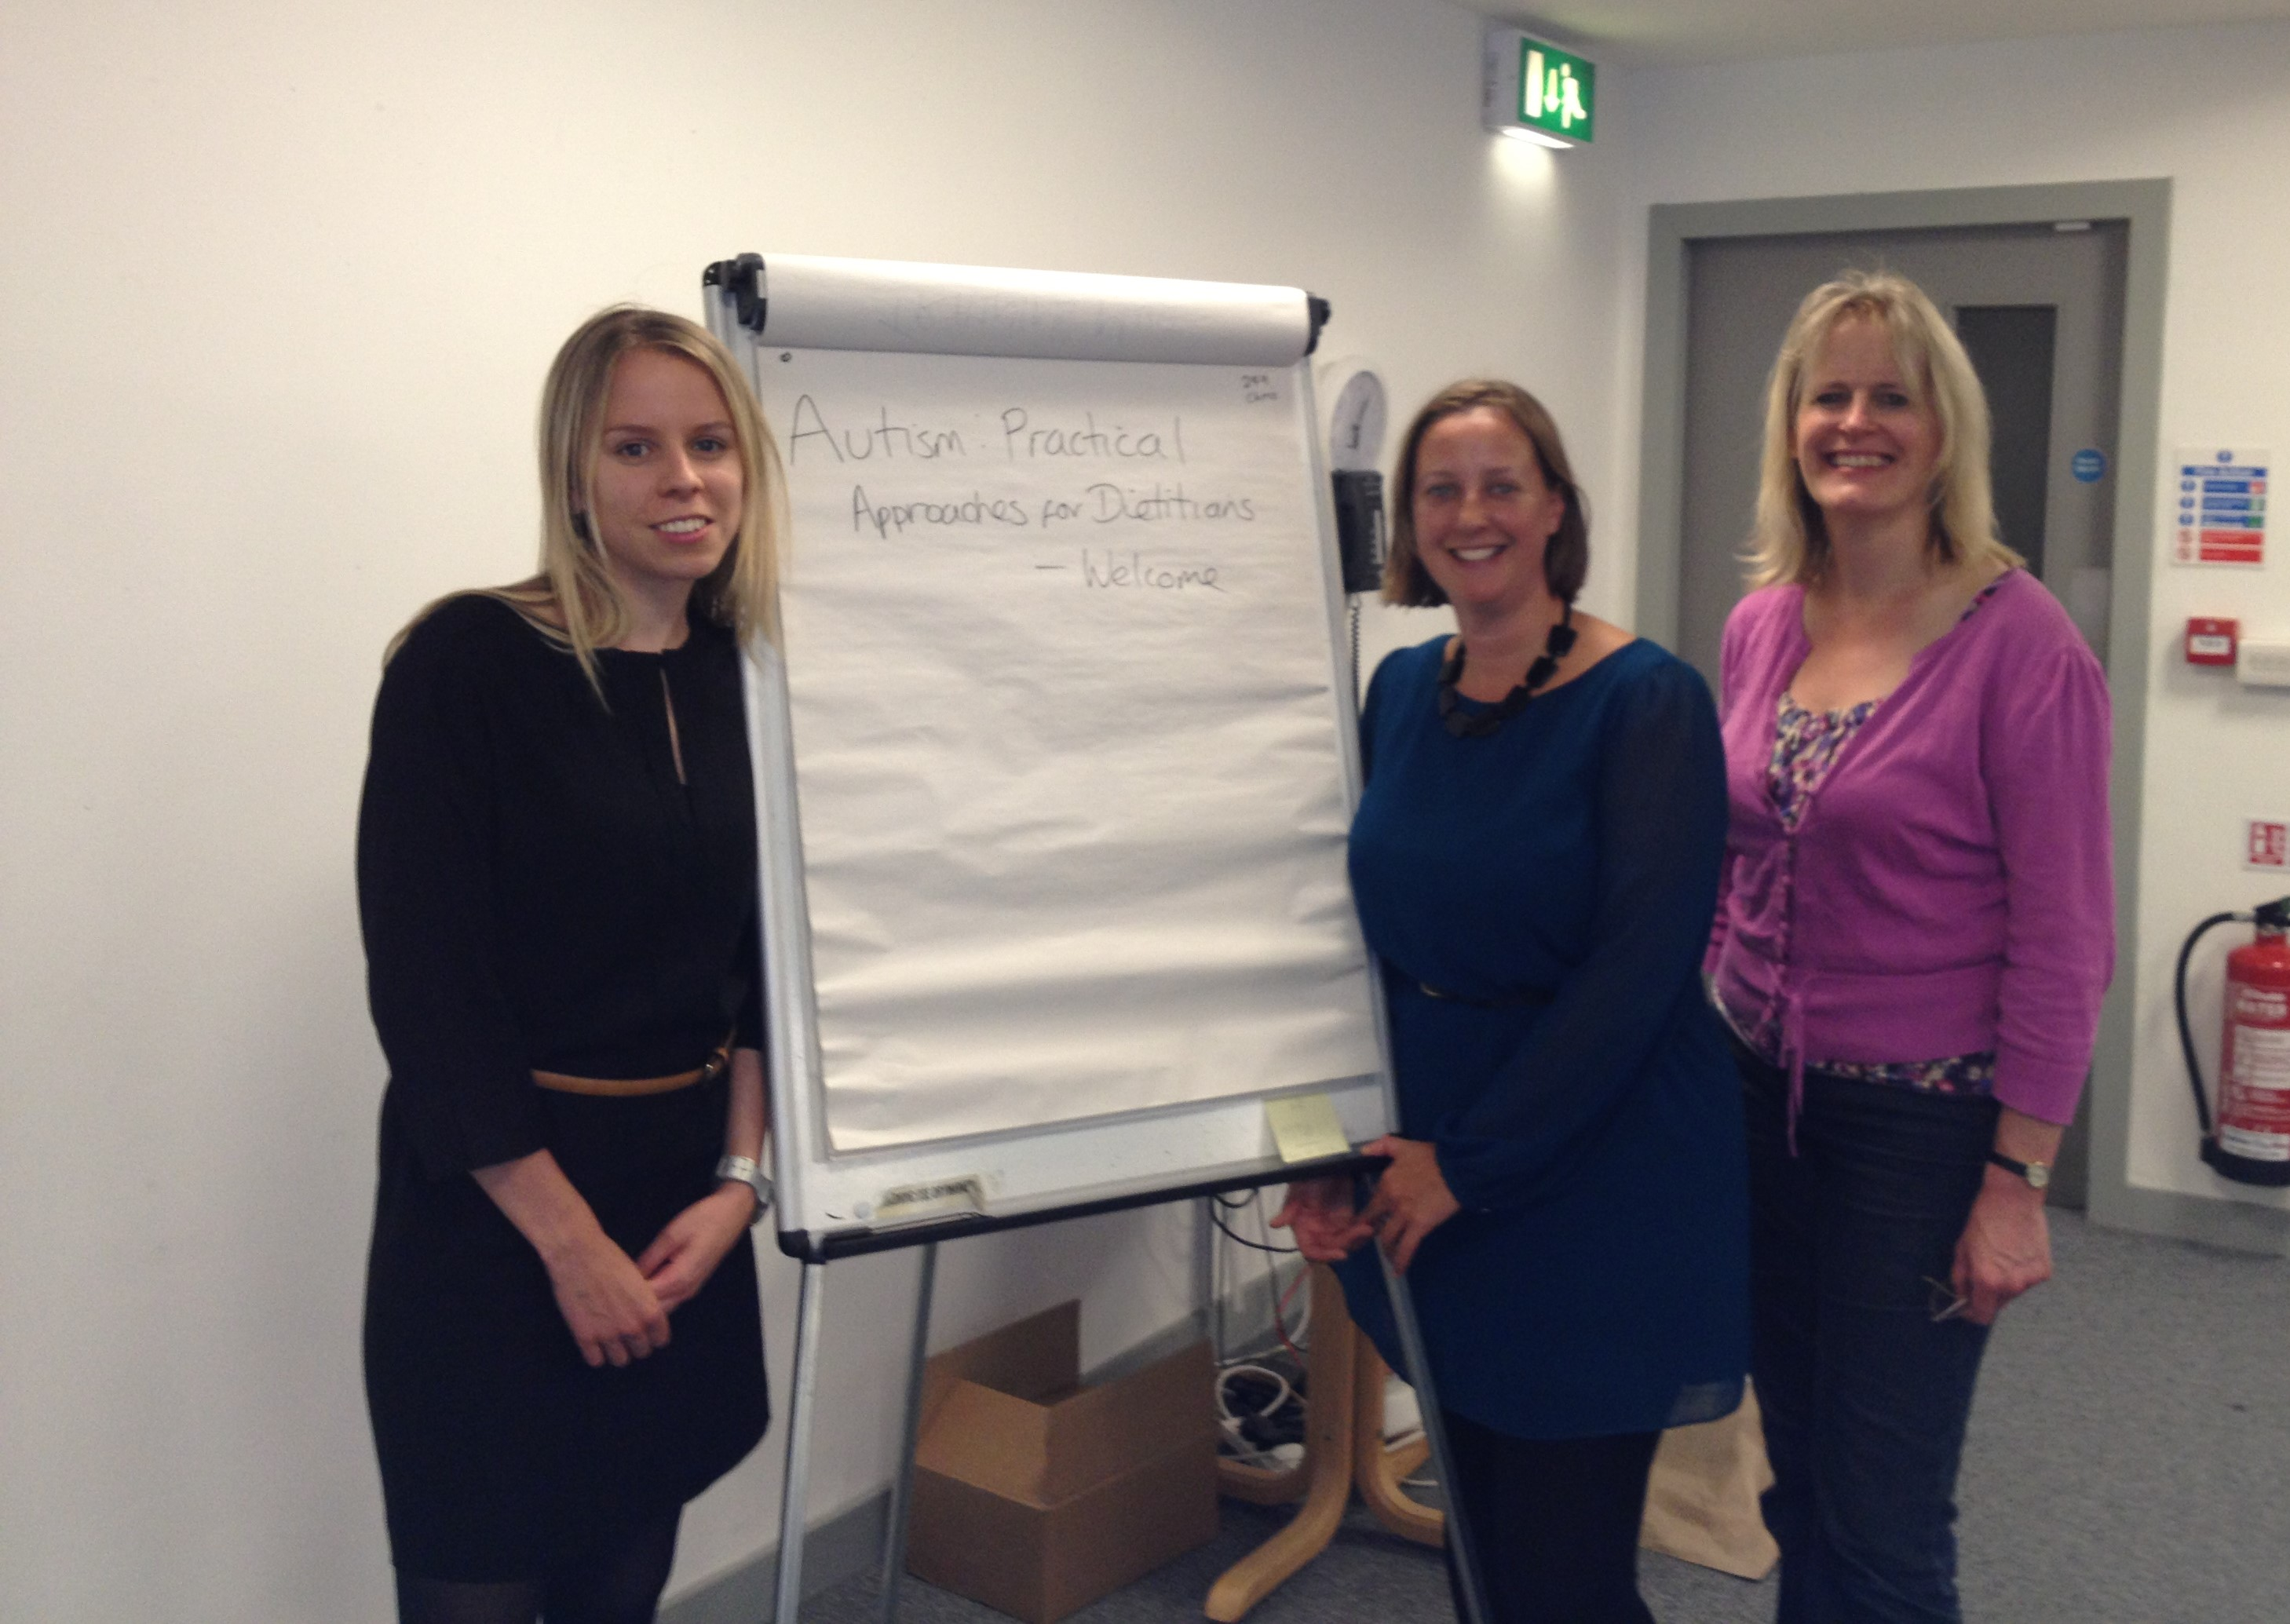 A picture of three white women stood in front of a flipchart